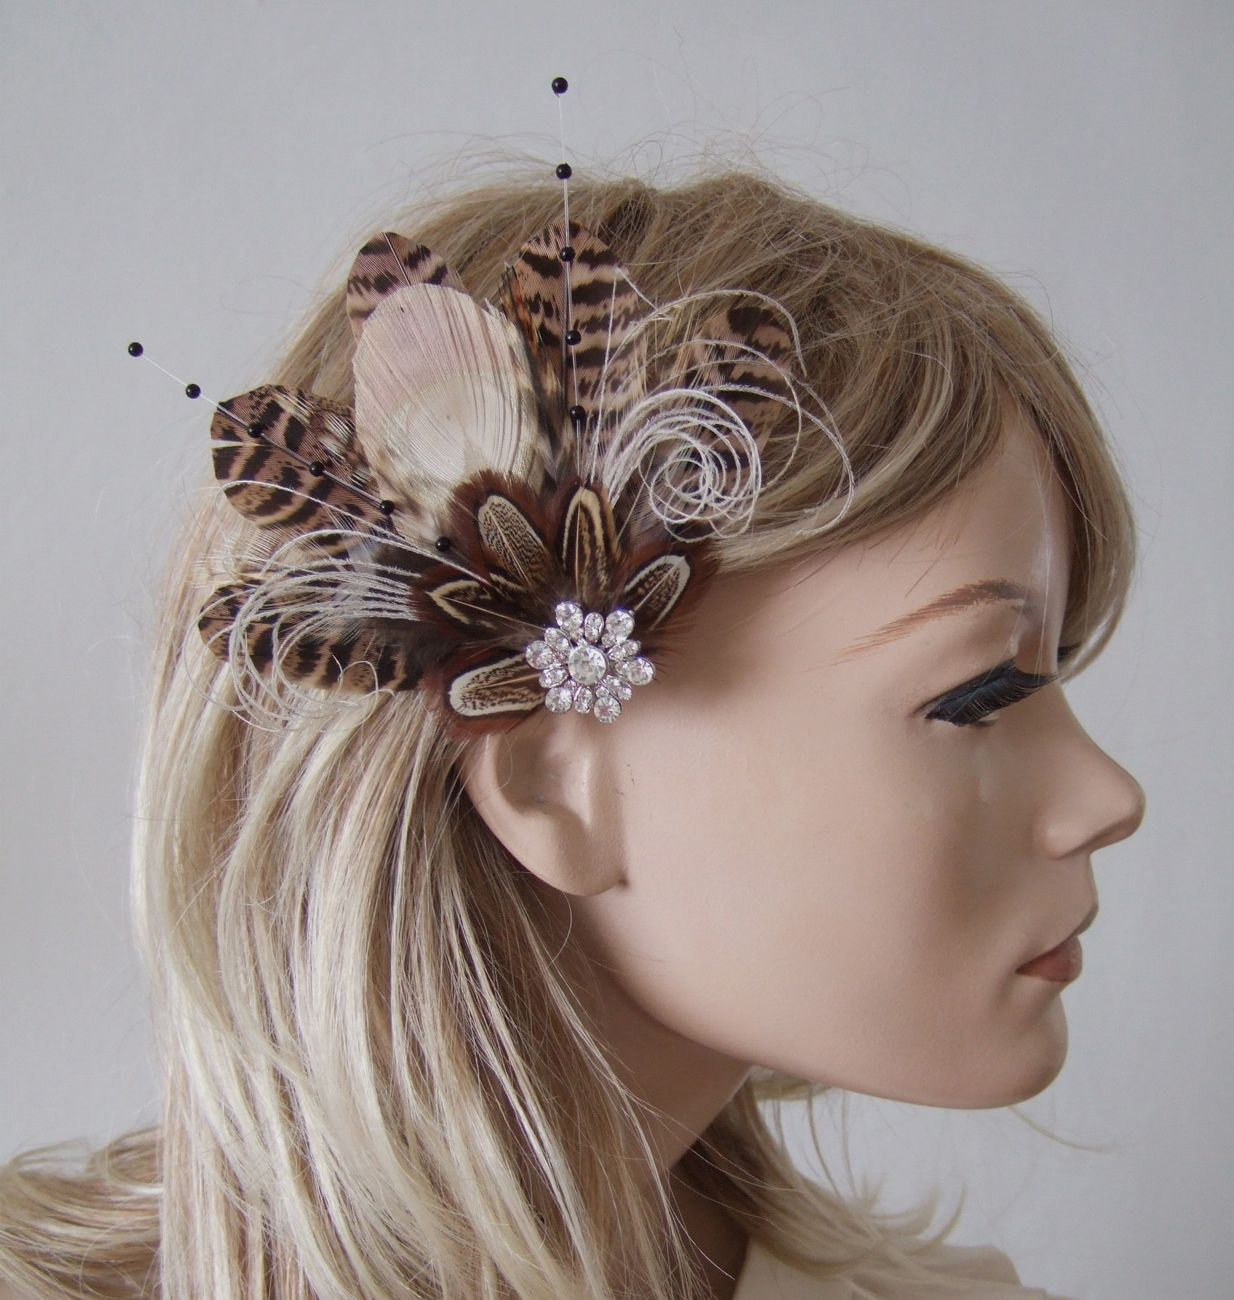 hair accessories for a wedding guest - the best accessories 2017